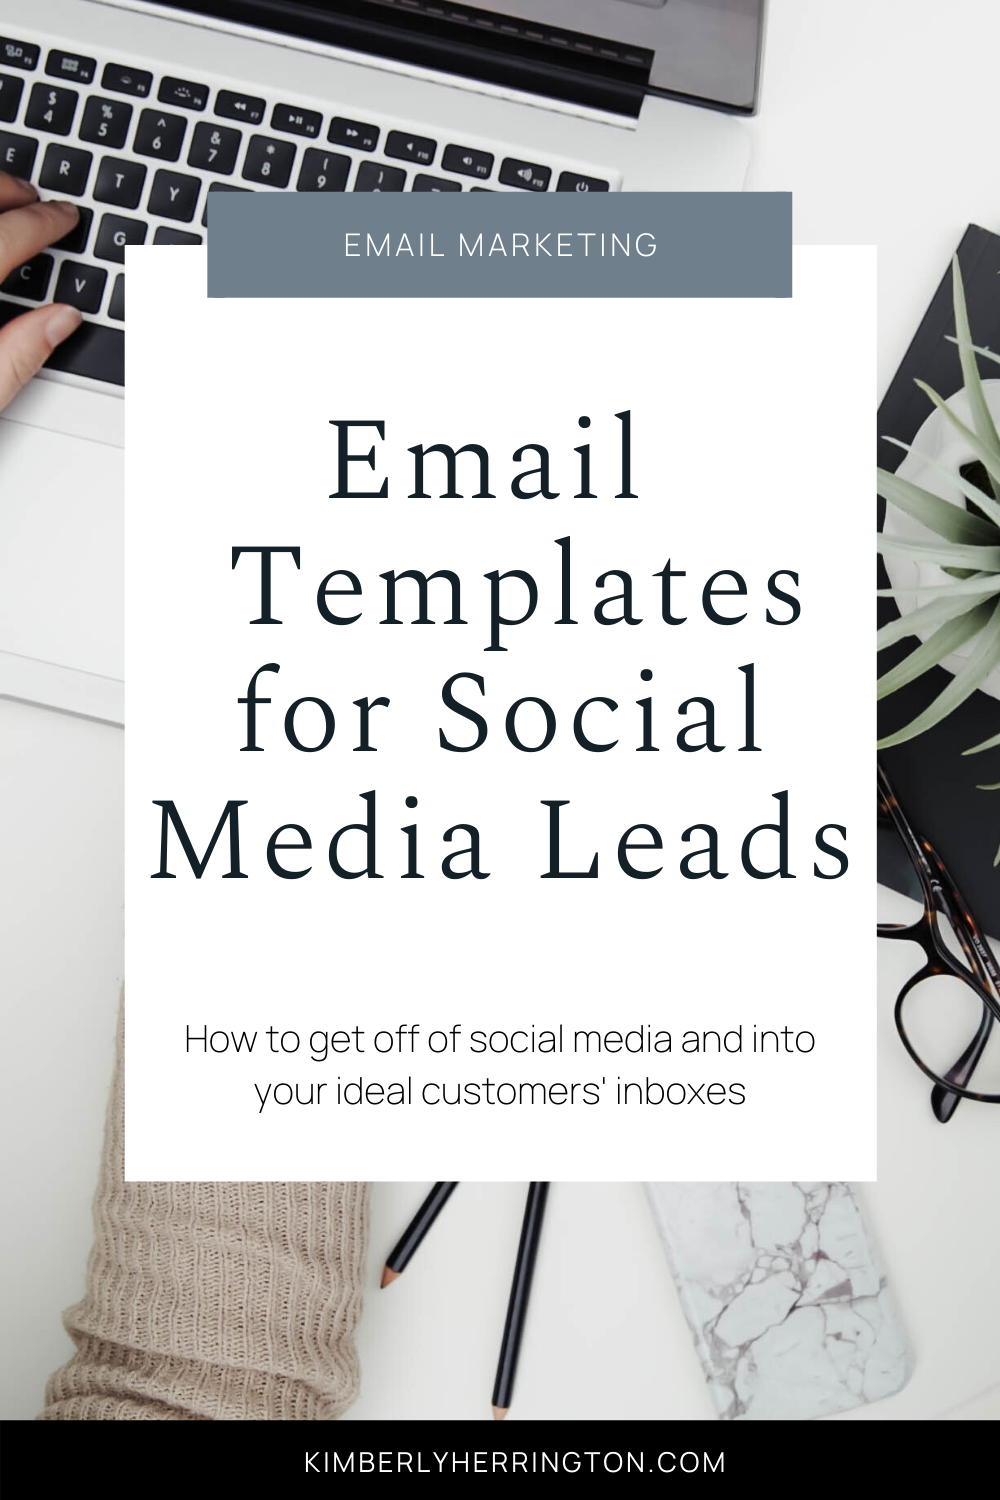 Email Templates for Social Media Leads